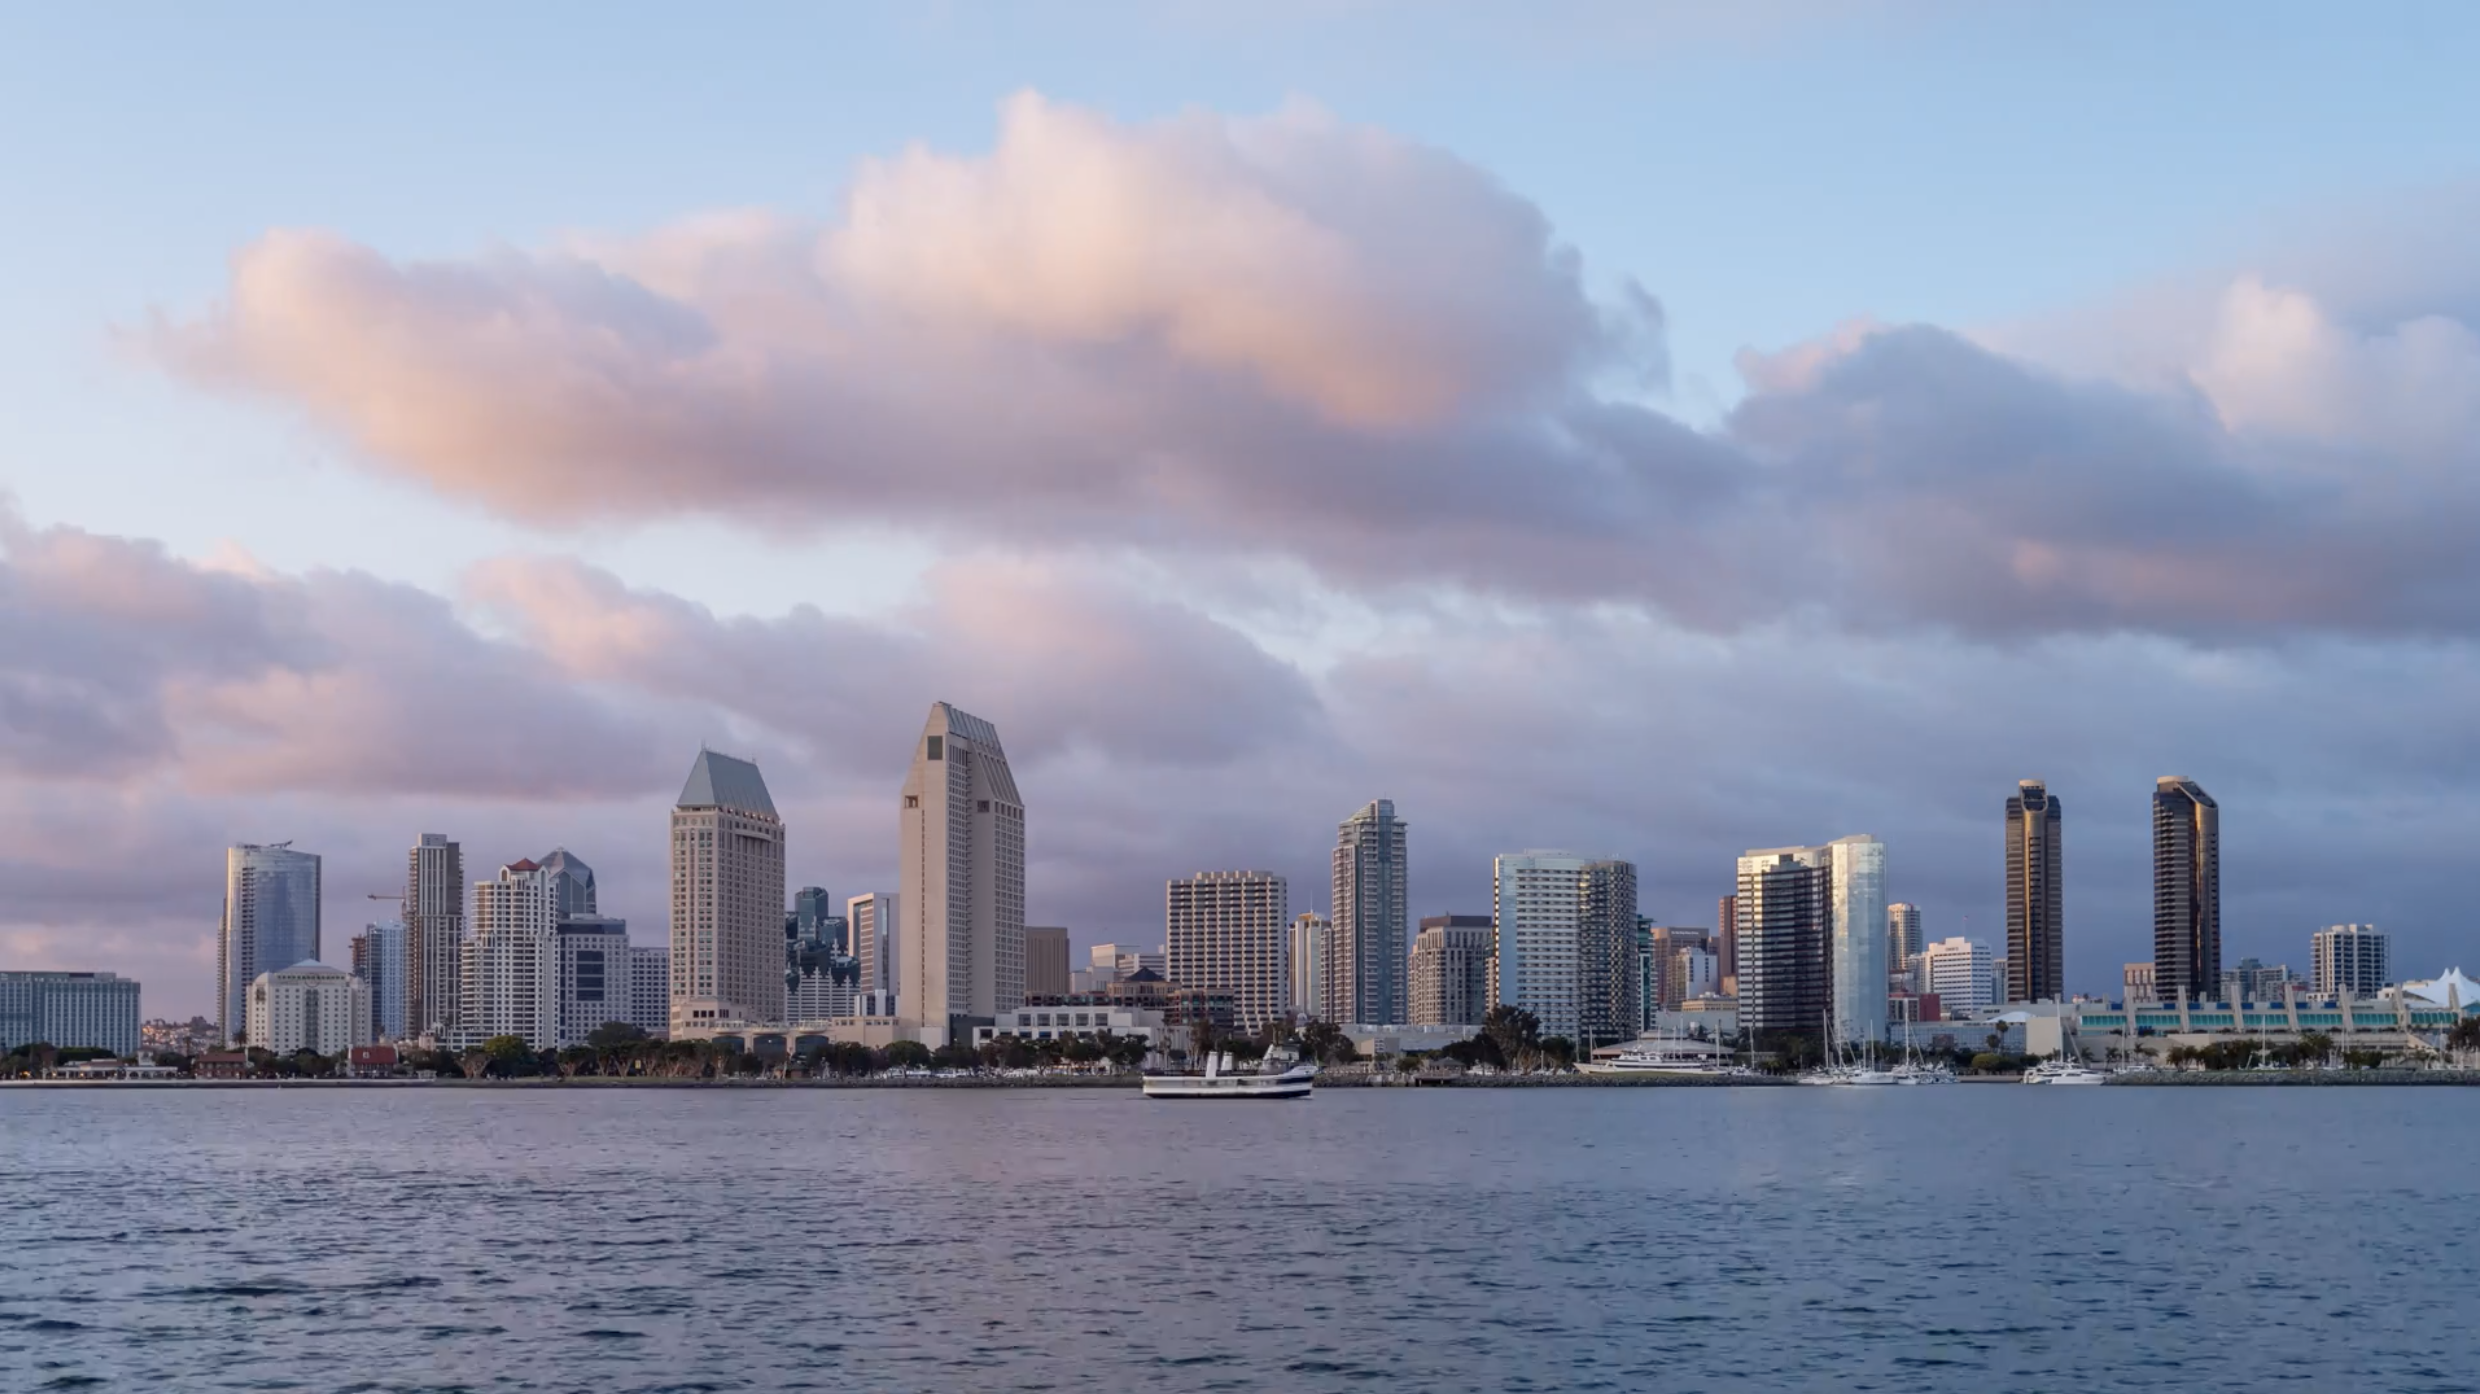 Hd Downtown San Diego Skyline Day To Night Sunset Emeric S Timelapse